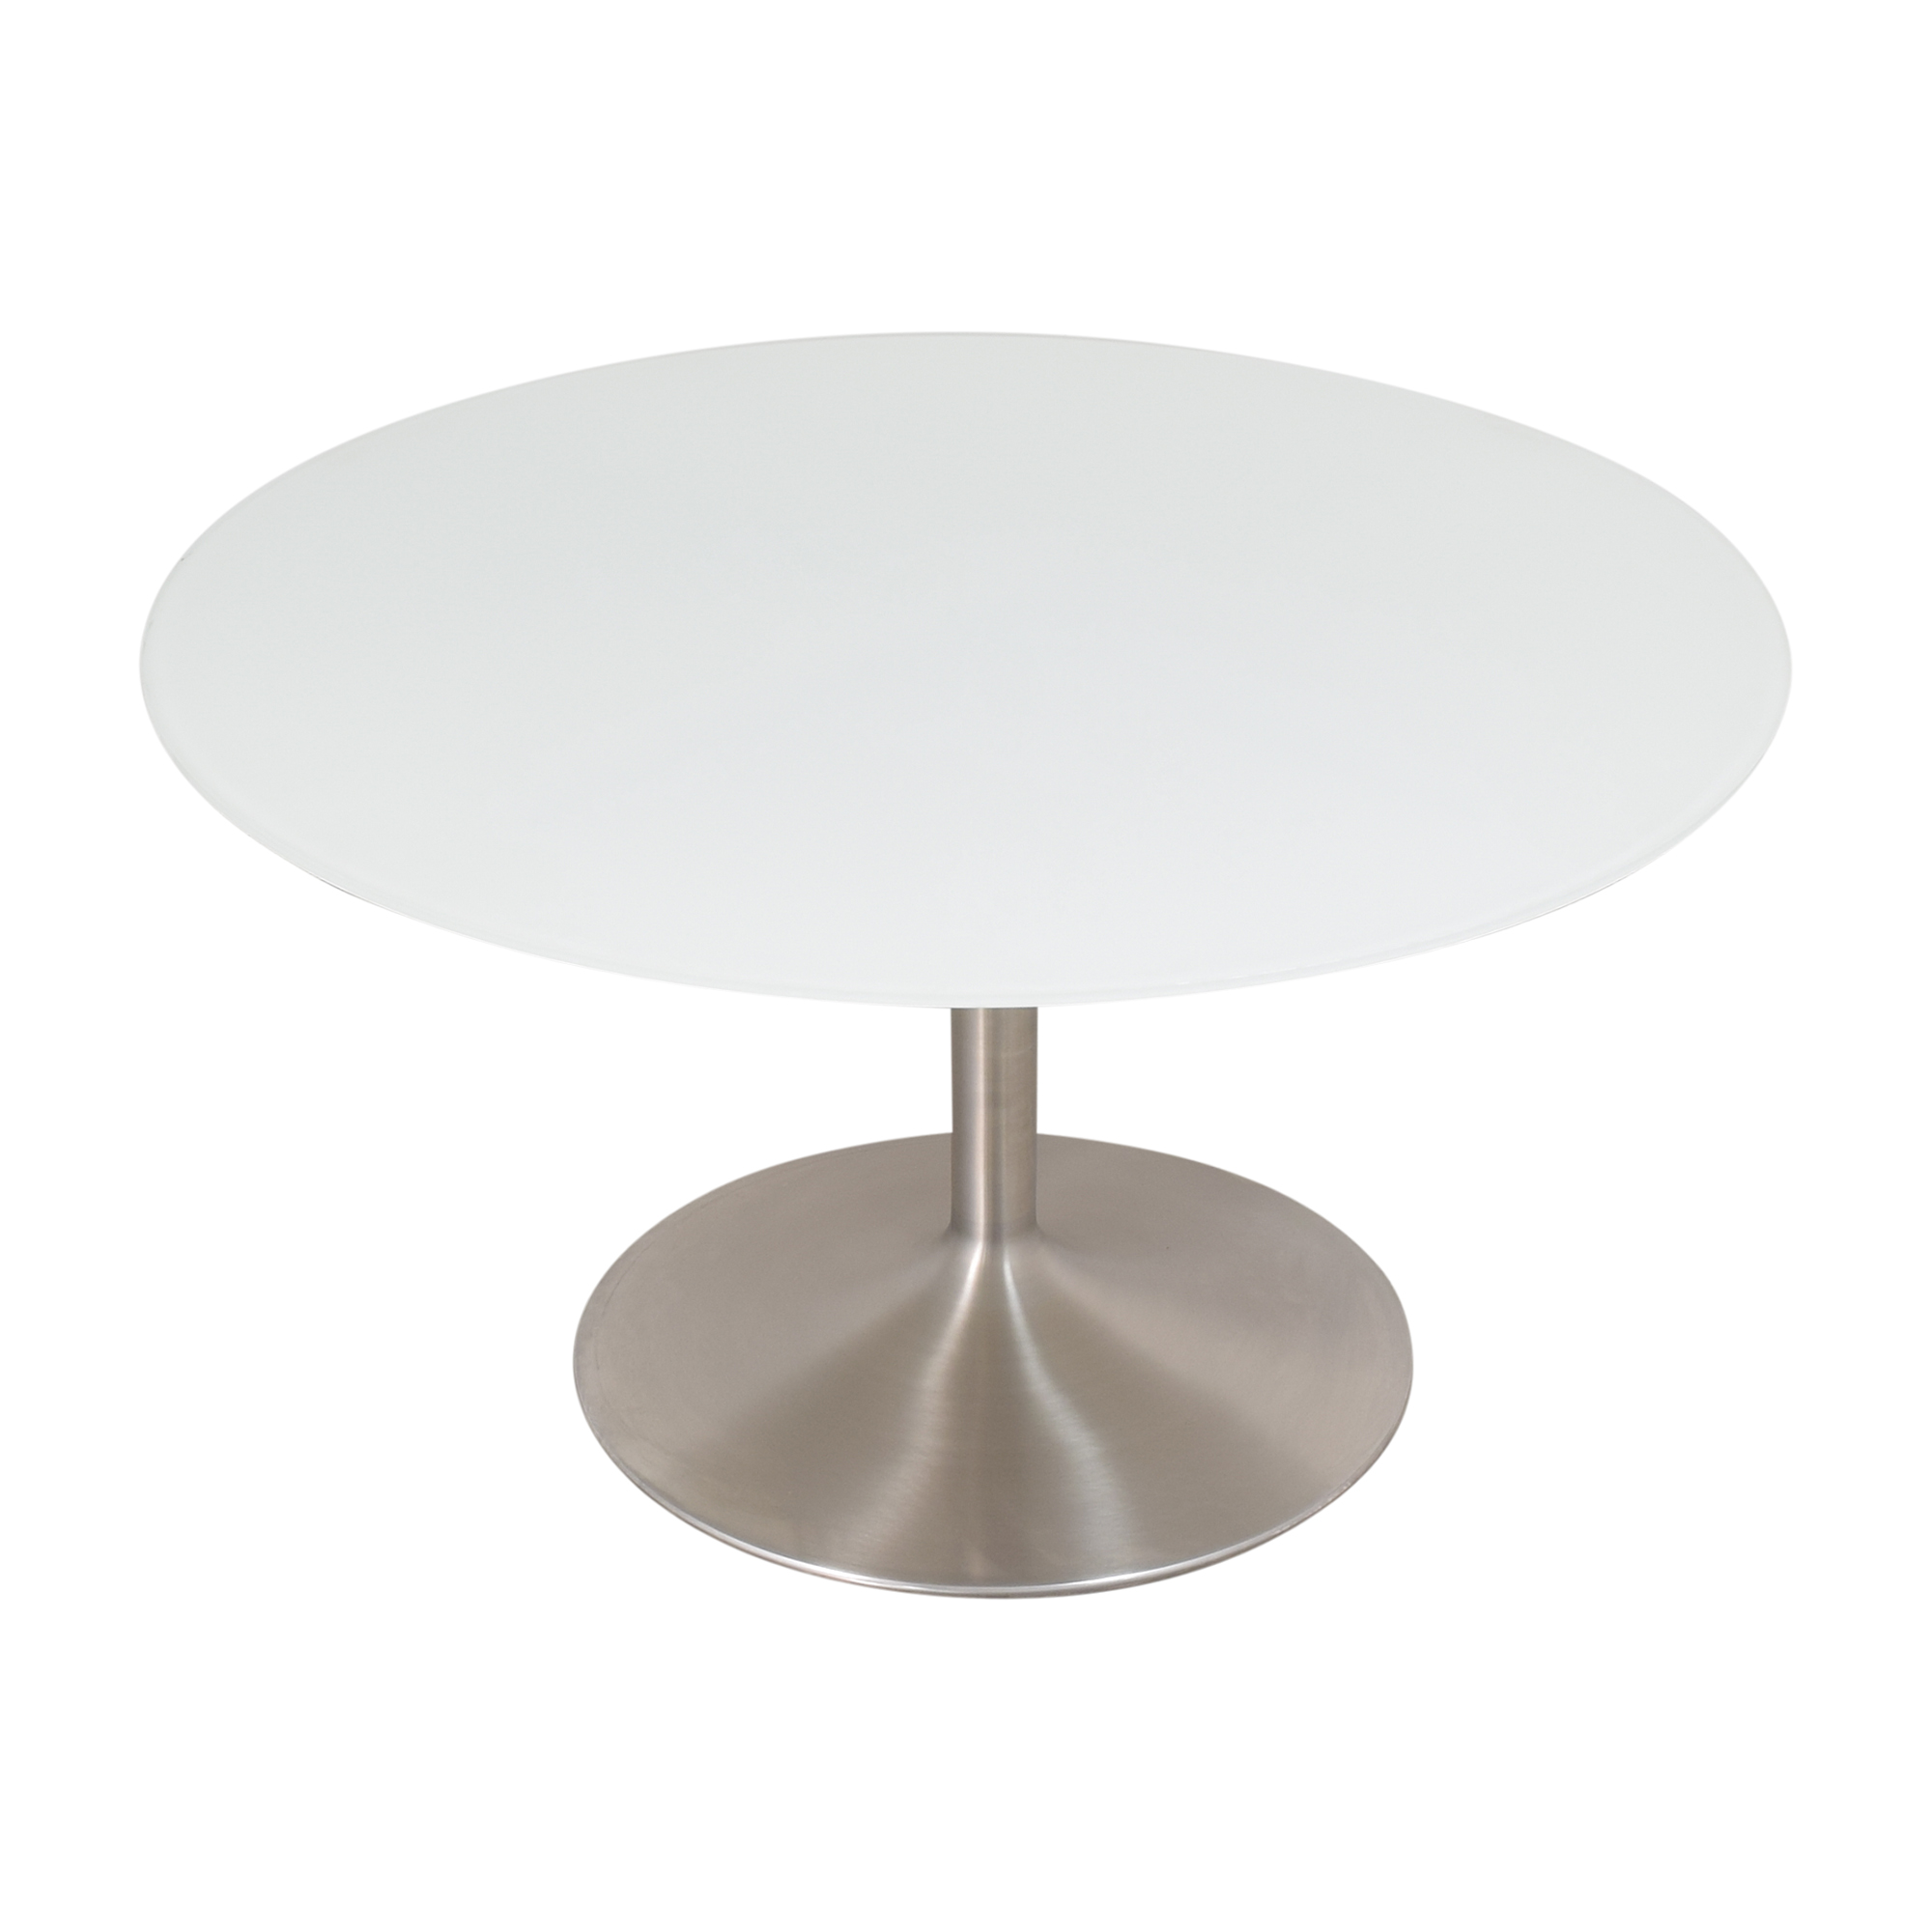 Room & Board Aria Round Conference Table / Tables